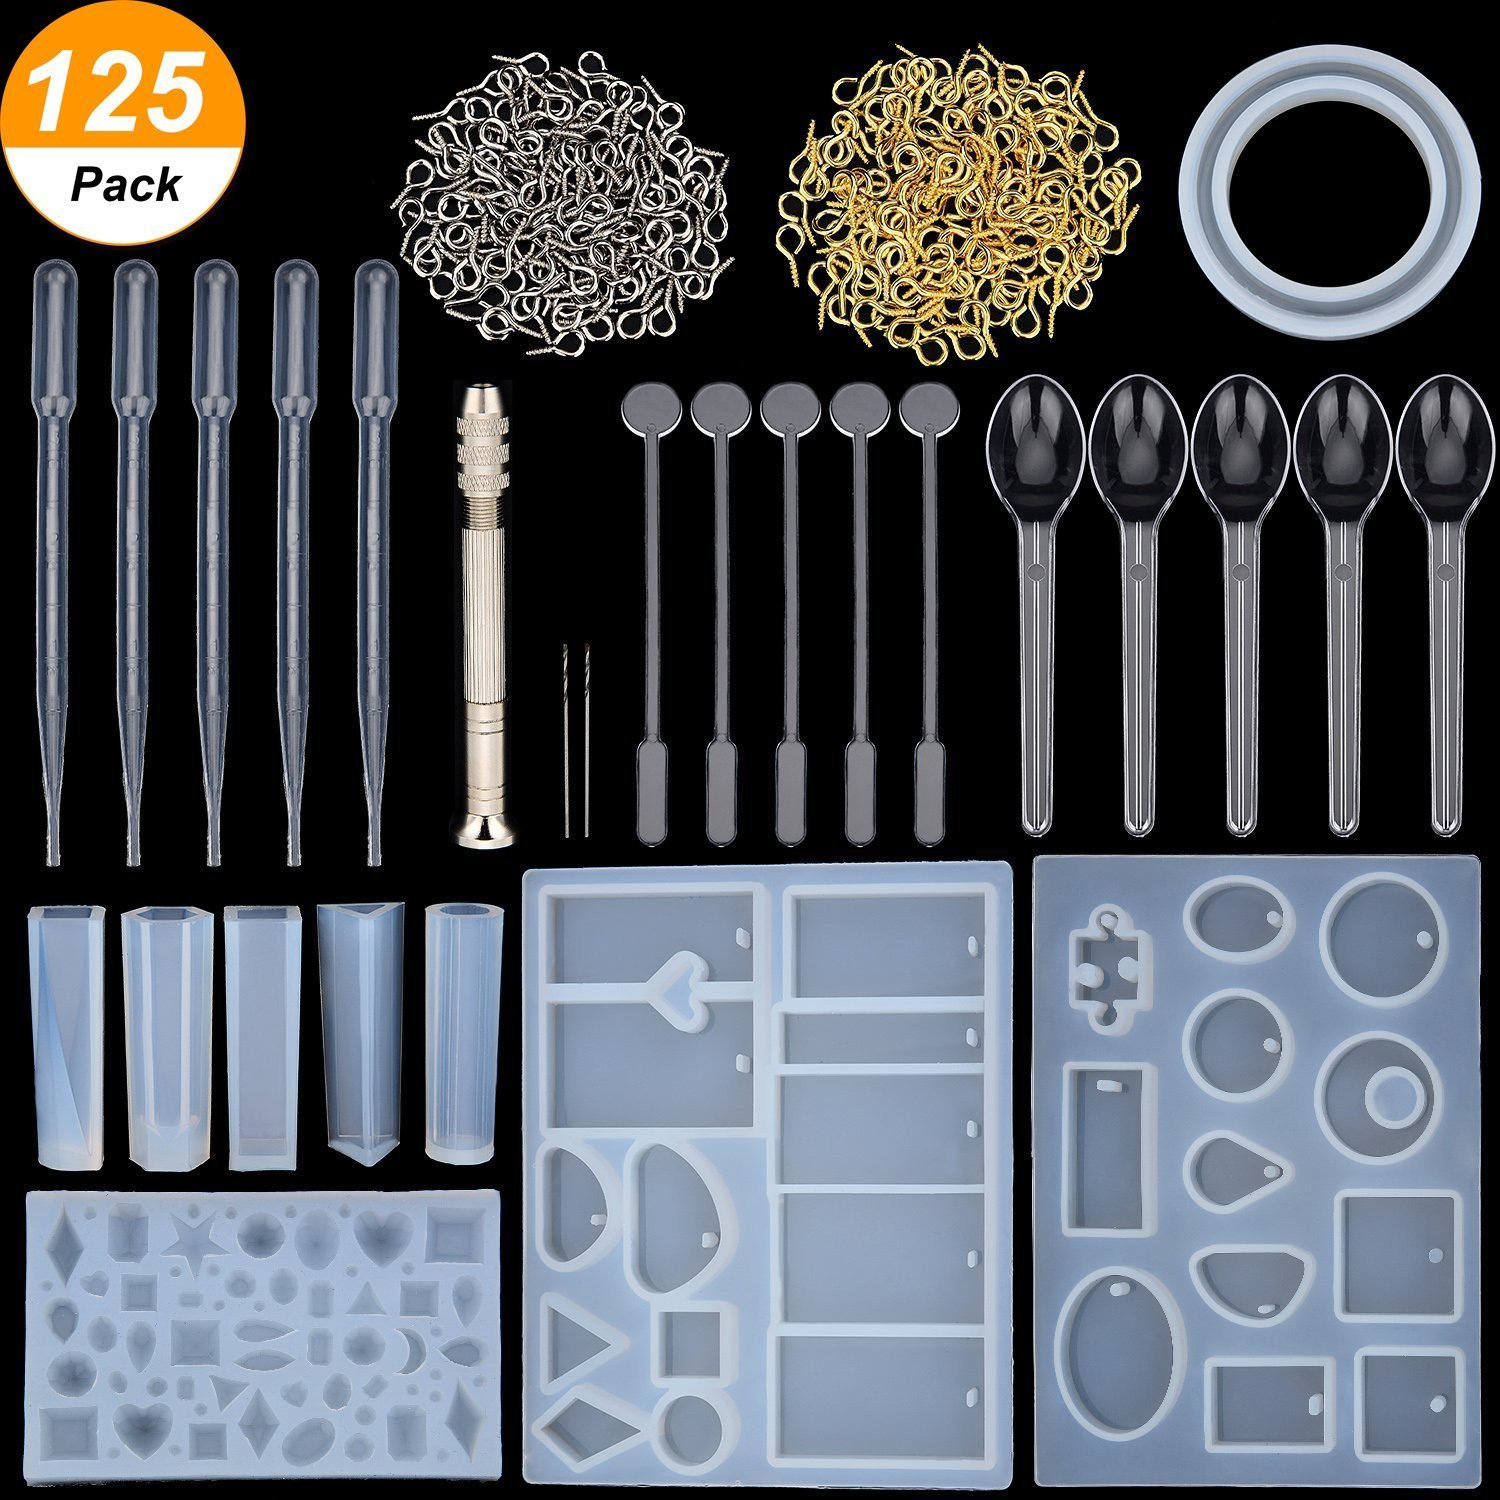 Resin Casting Molds and Tools Set, Include Assorted Styles Silicone Molds, Stirrers, Droppers, Spoons, Hand Twist Drill and Screw Eye Pins for Pendant Jewelry Making, 125 Pieces Totally KisSealed Jewelry-Making Kits-125